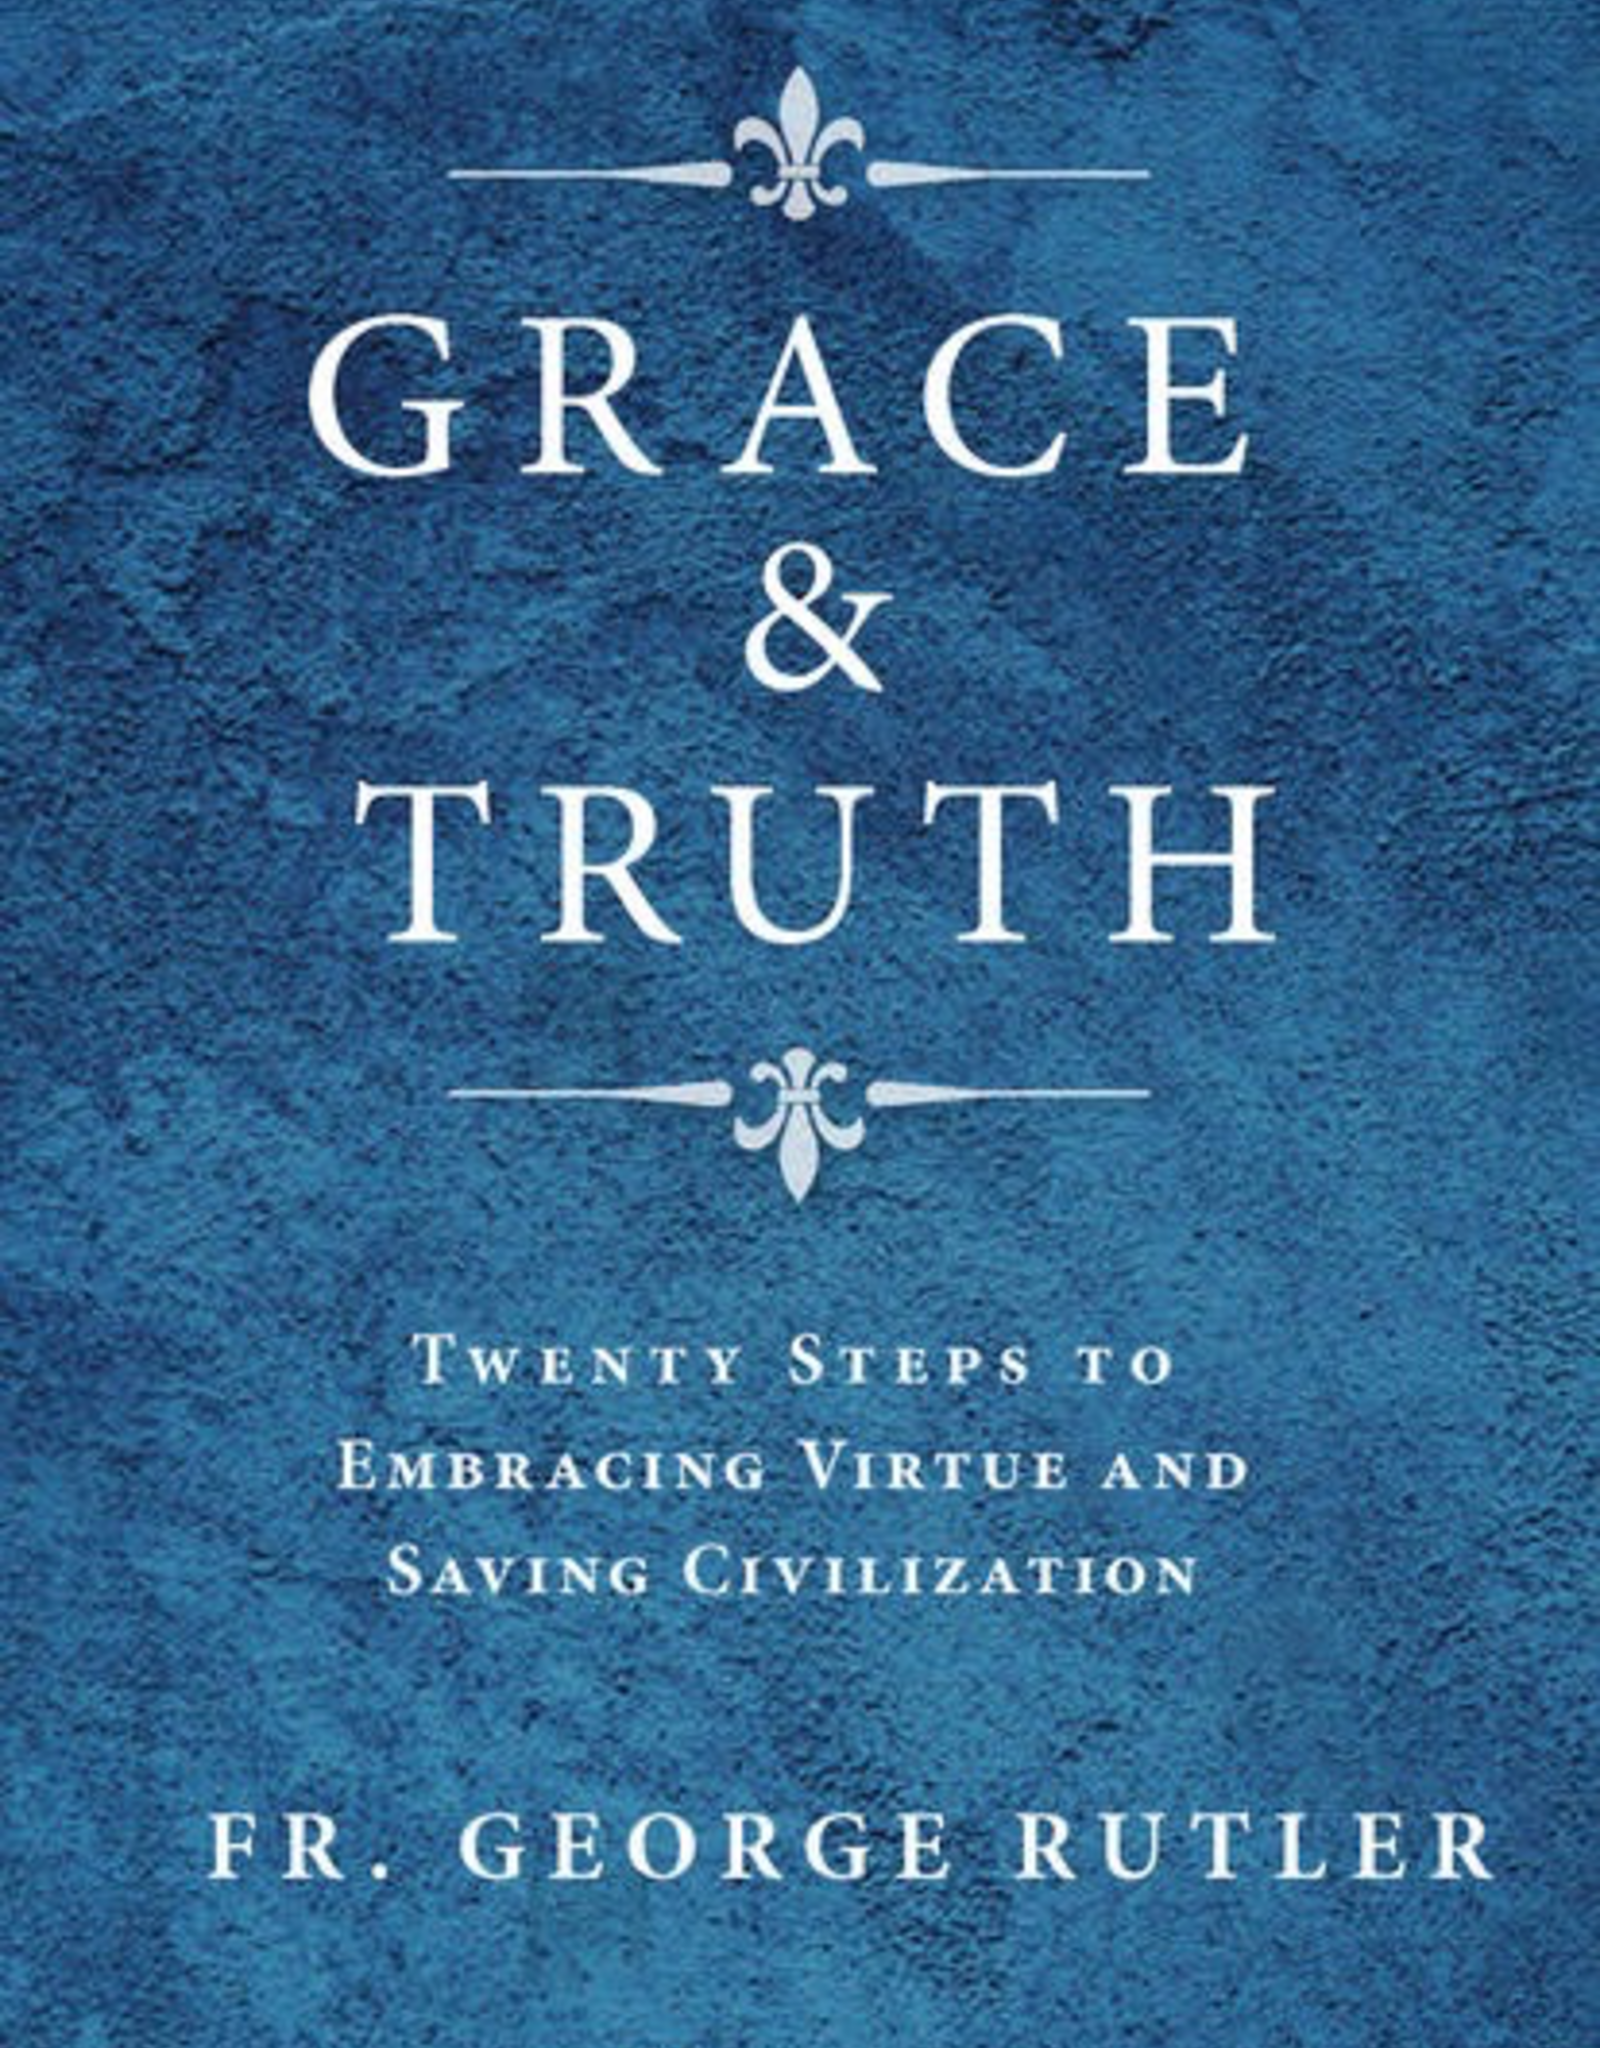 Sophia Institute Grace & Truth:  Twenty Steps to Embracing Virtue and Saving Civilization, by Geroge Rutler (paperback)